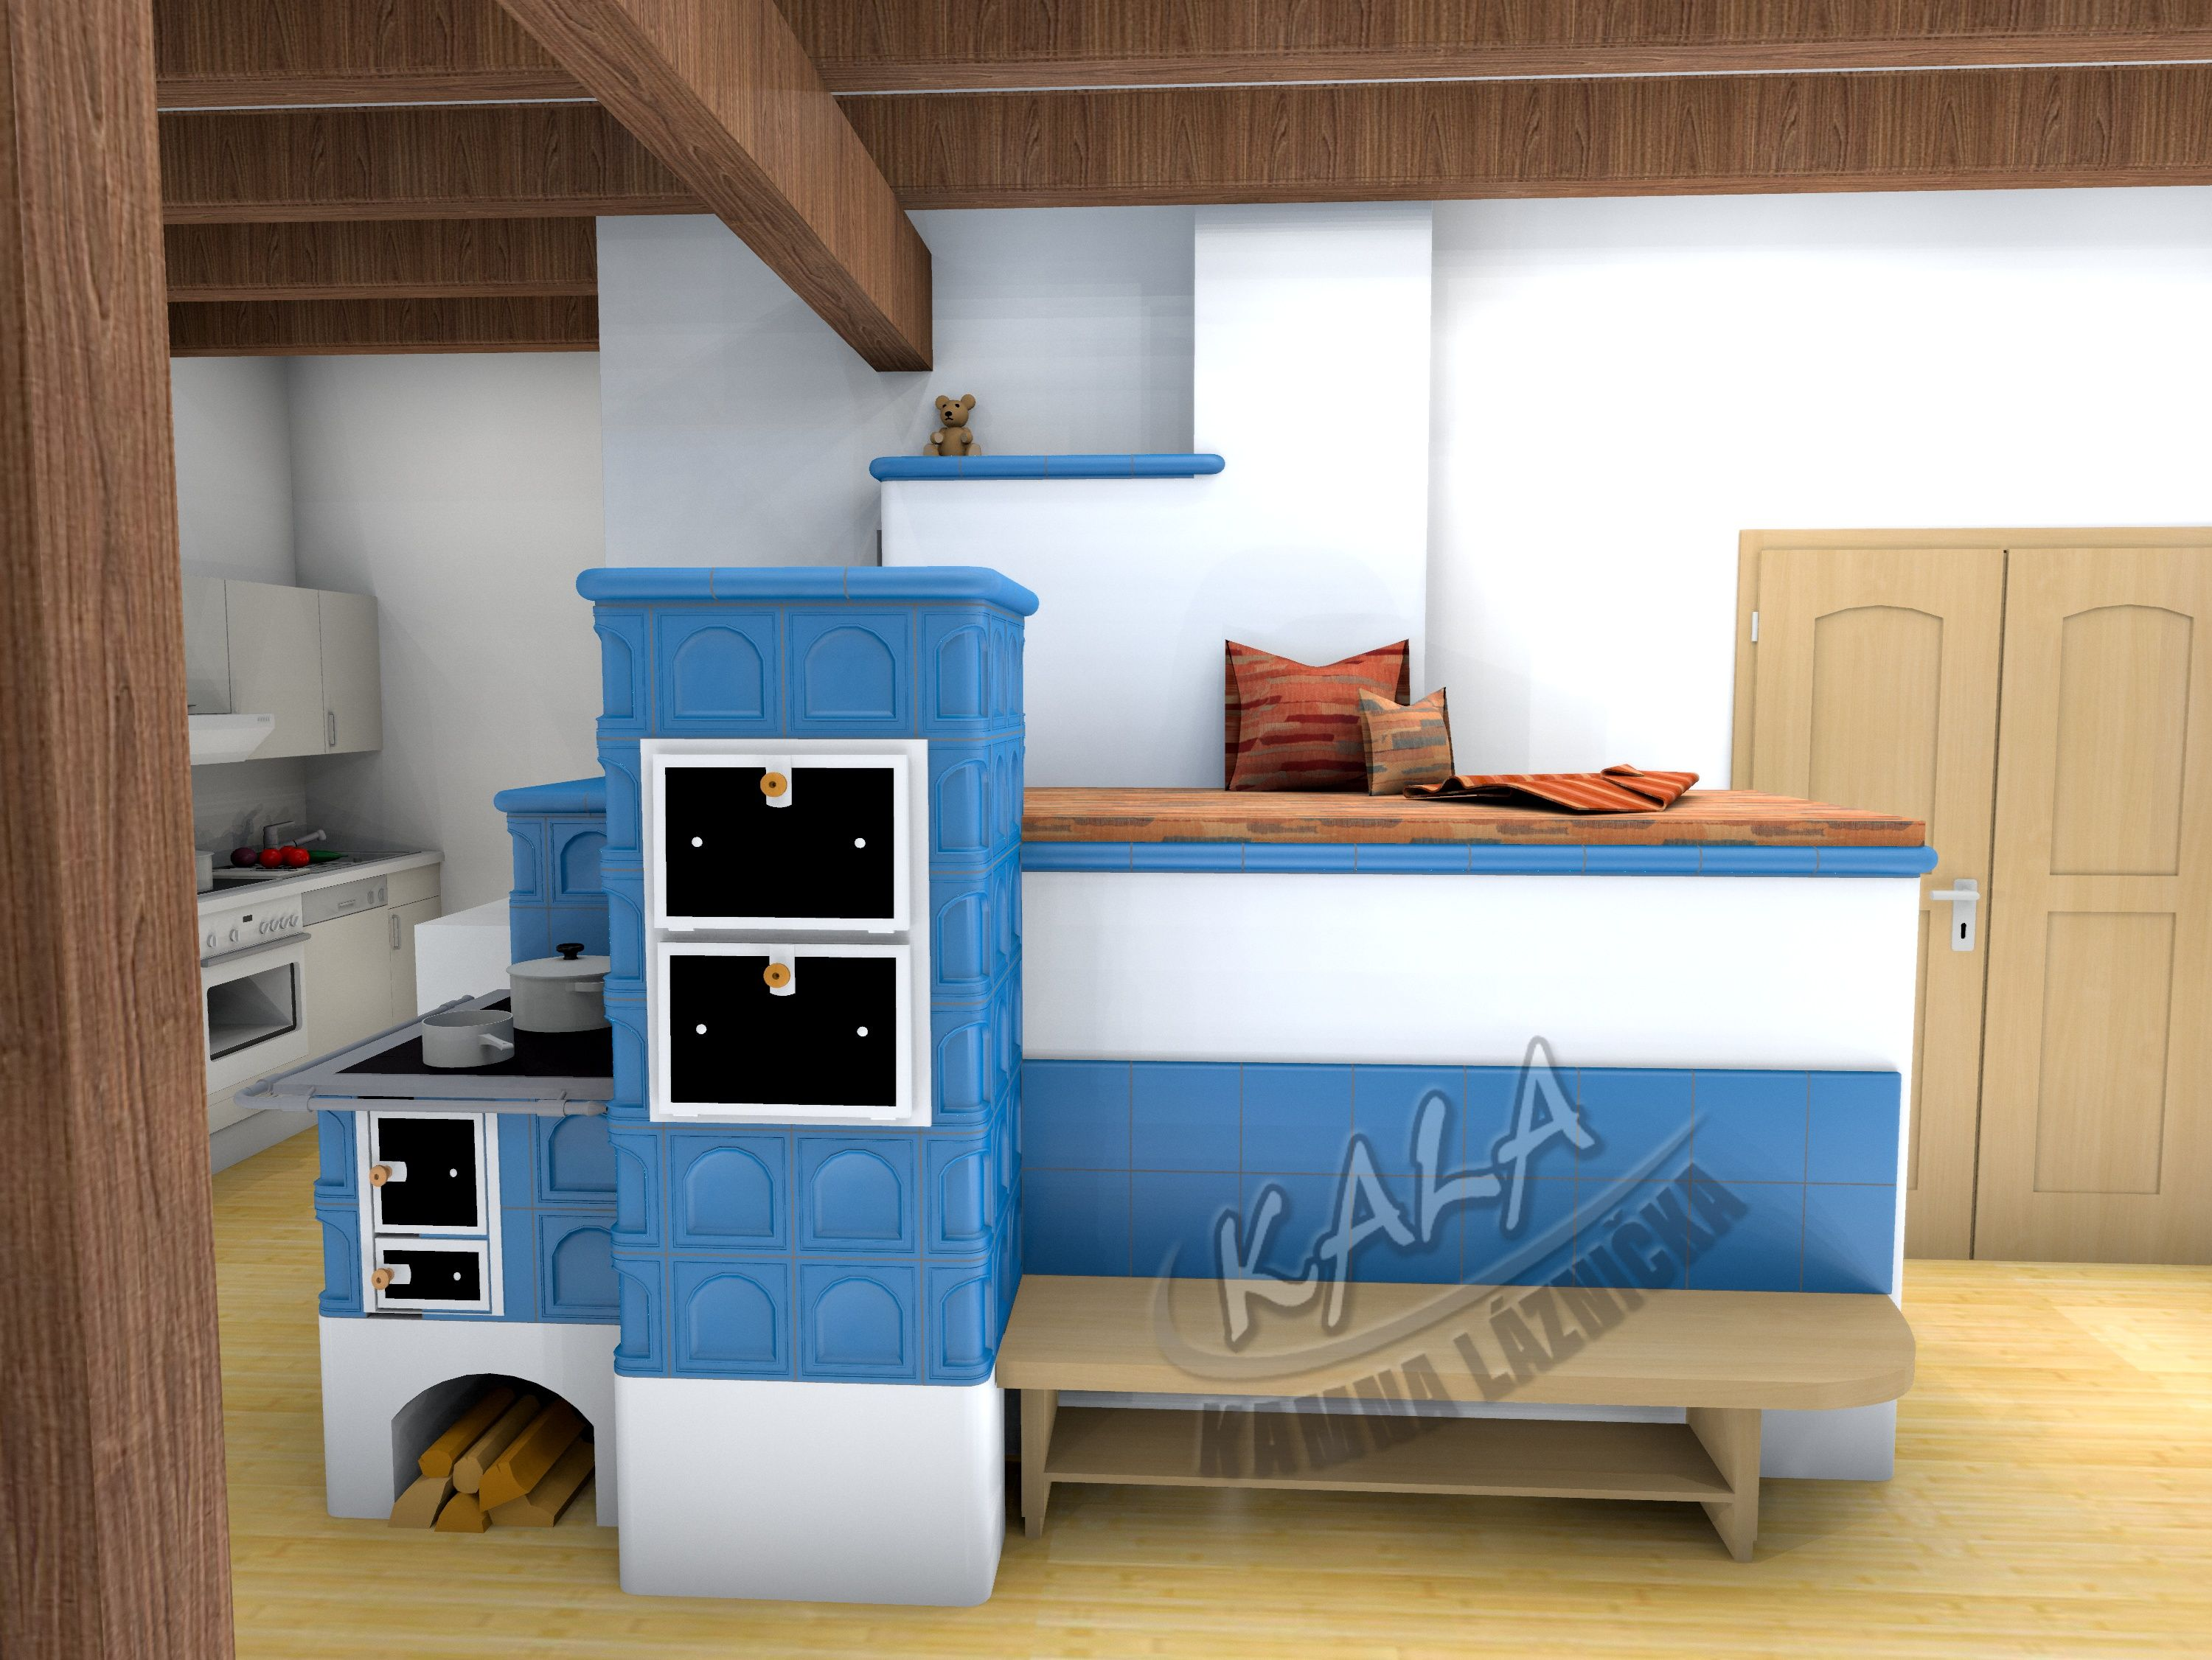 3d vizualizace kachlov spor k s le en m sv t kamen. Black Bedroom Furniture Sets. Home Design Ideas